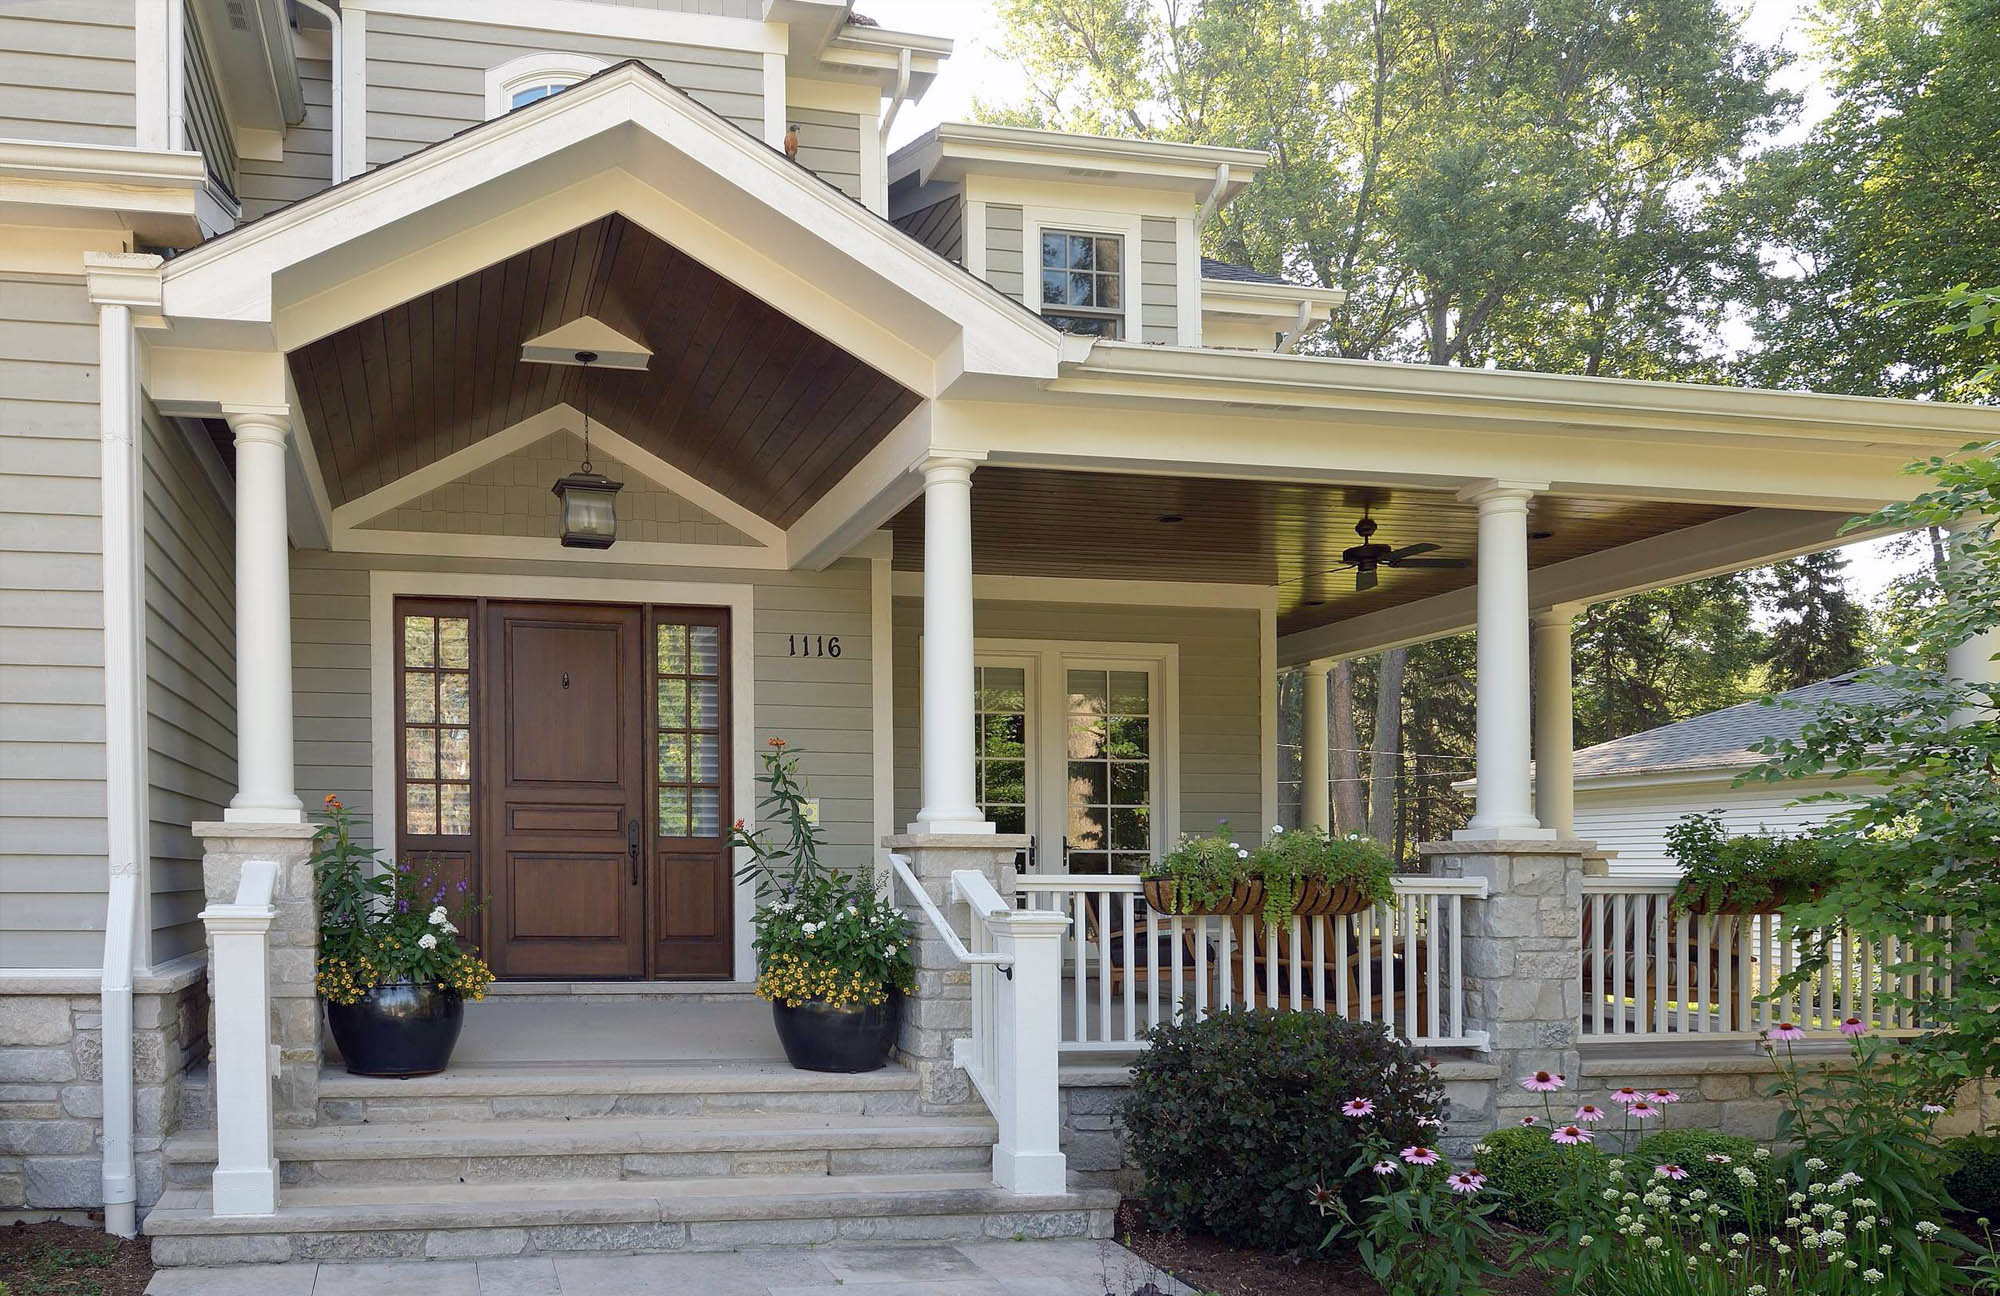 green house color ideas - green siding with stone veneer white trim and columns real wood soffit